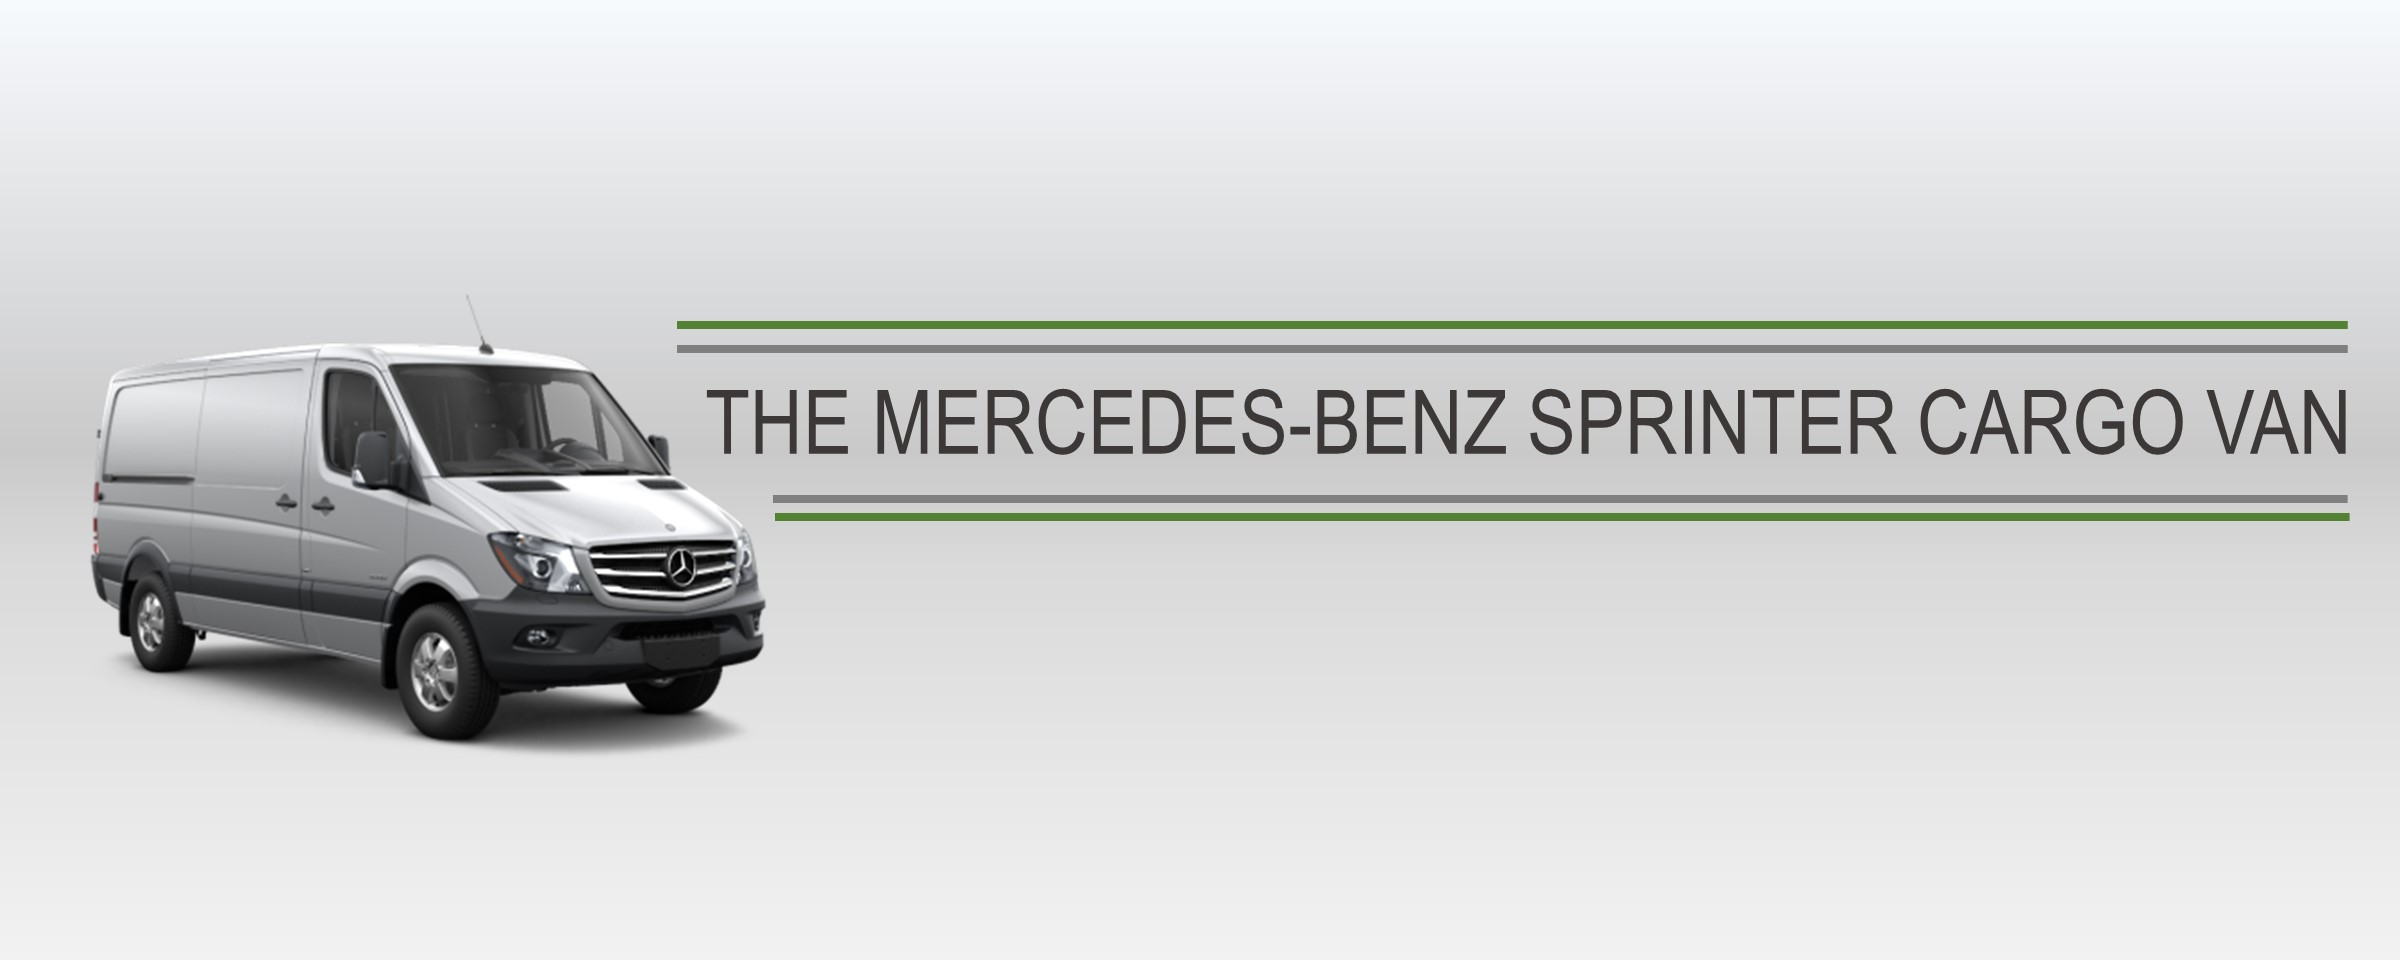 Amazing quality the mercedes benz sprinter cargo van for 2017 mercedes benz sprinter cargo van